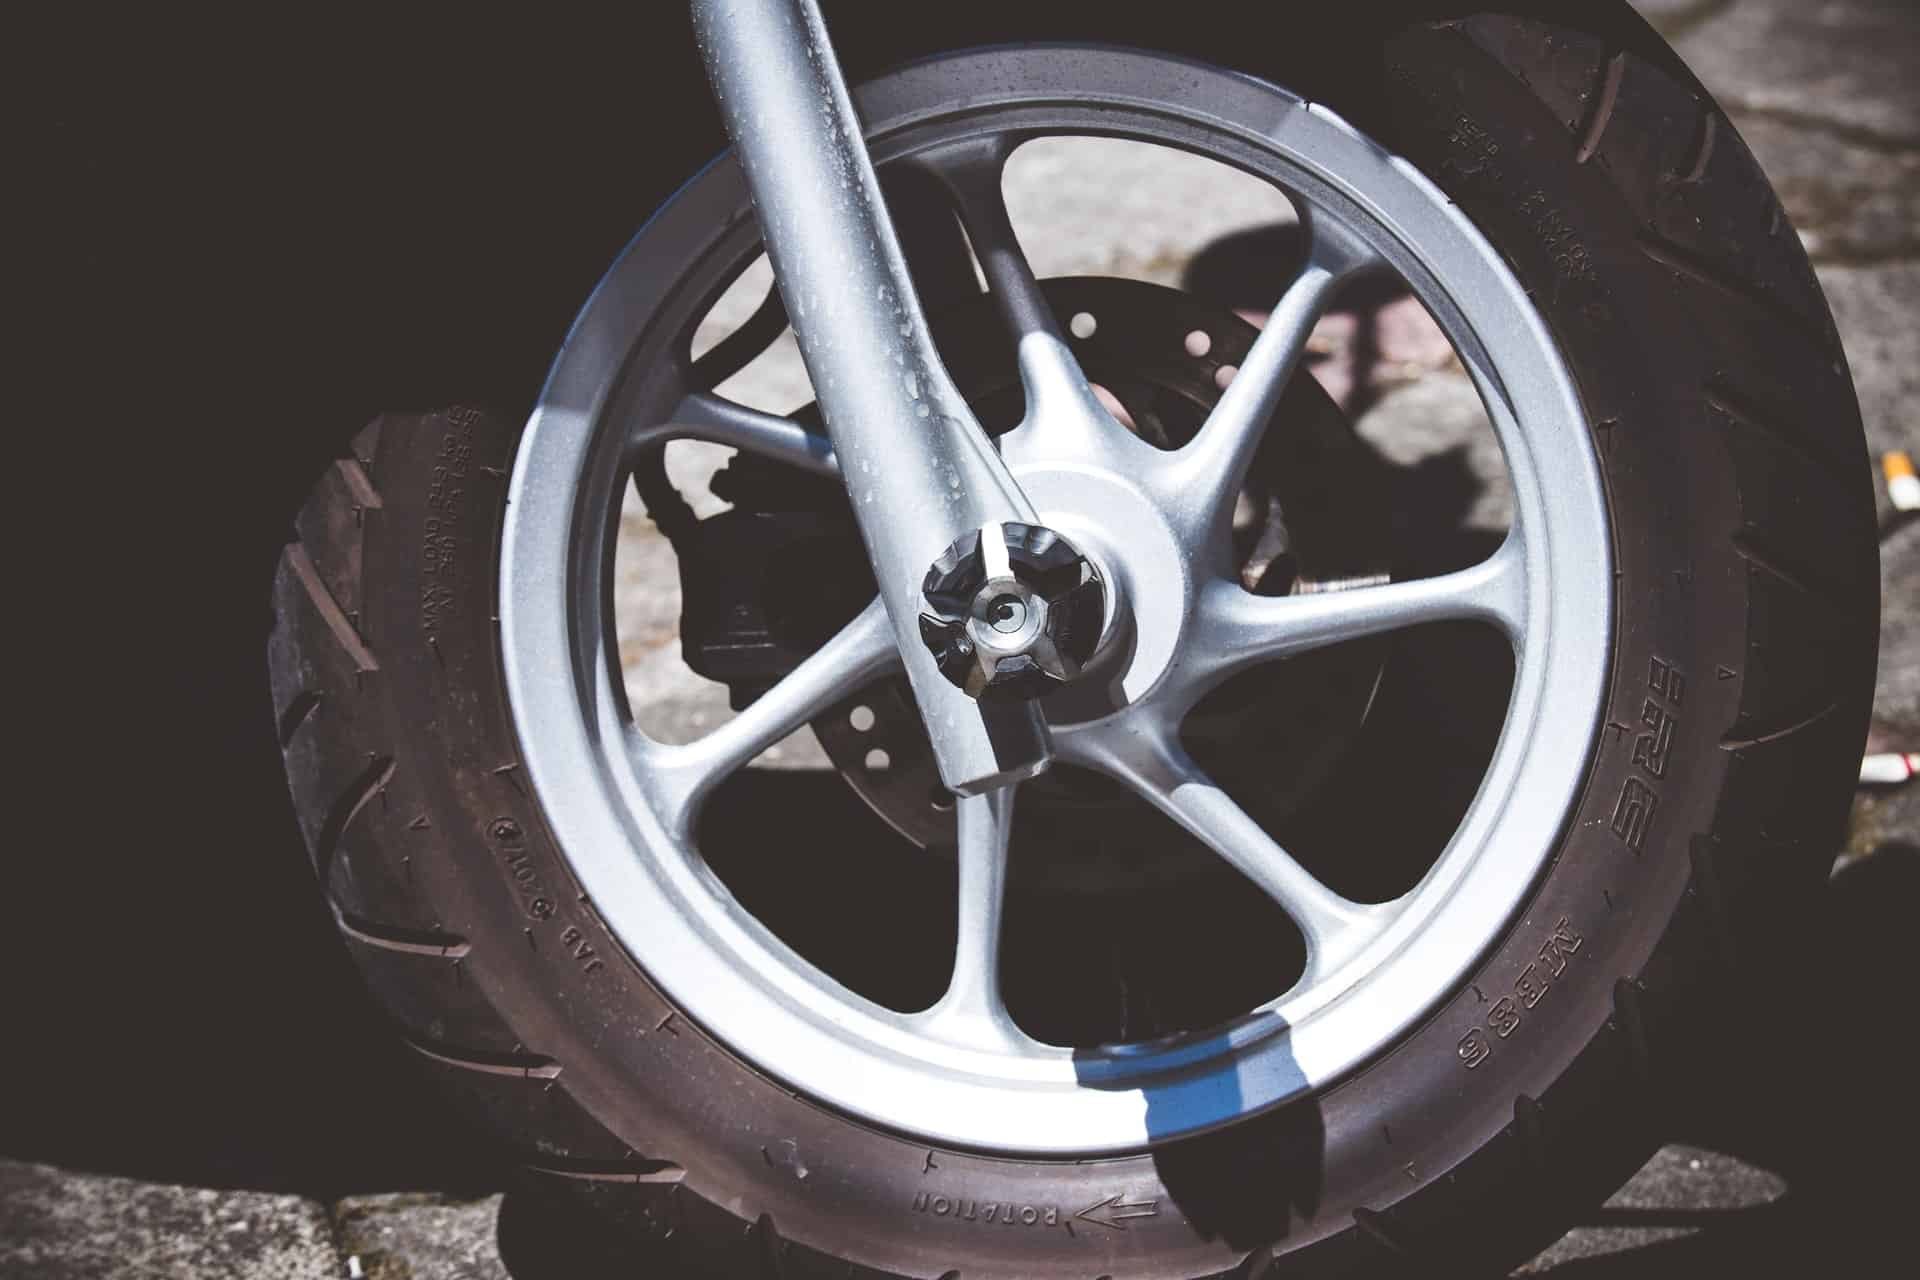 motorcycle tire close